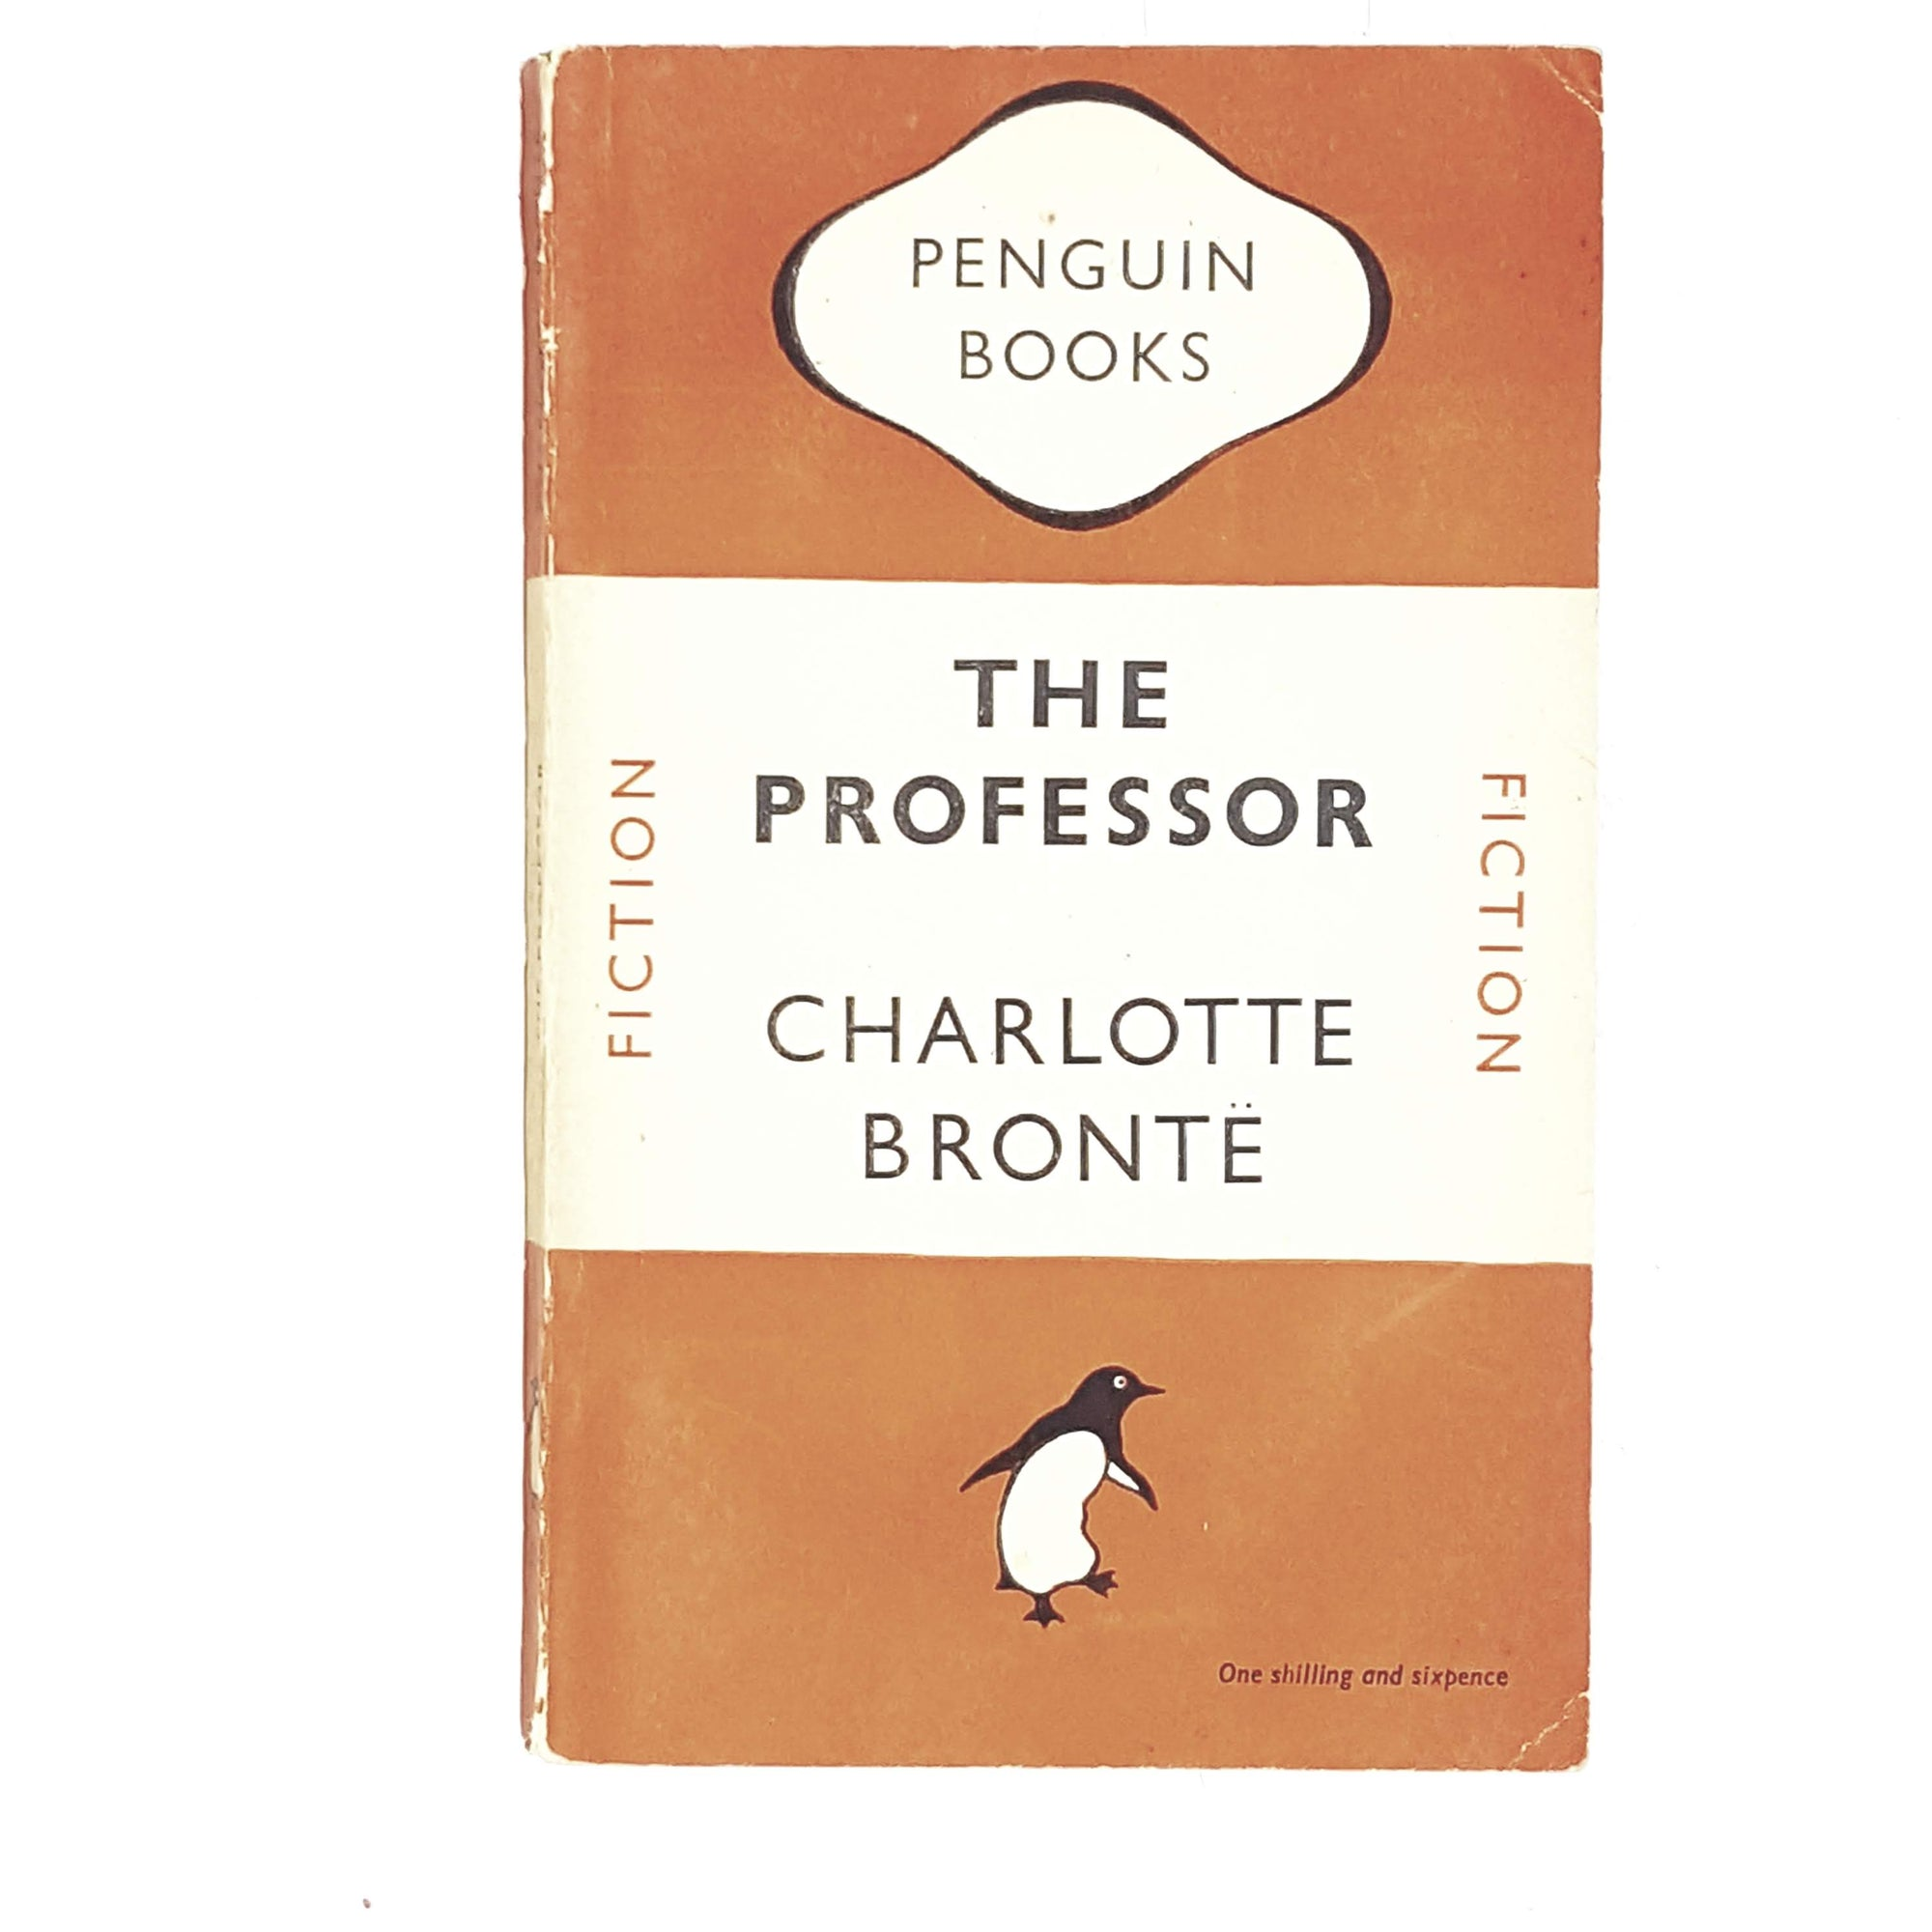 Charlotte Brontë's The Professor 1948